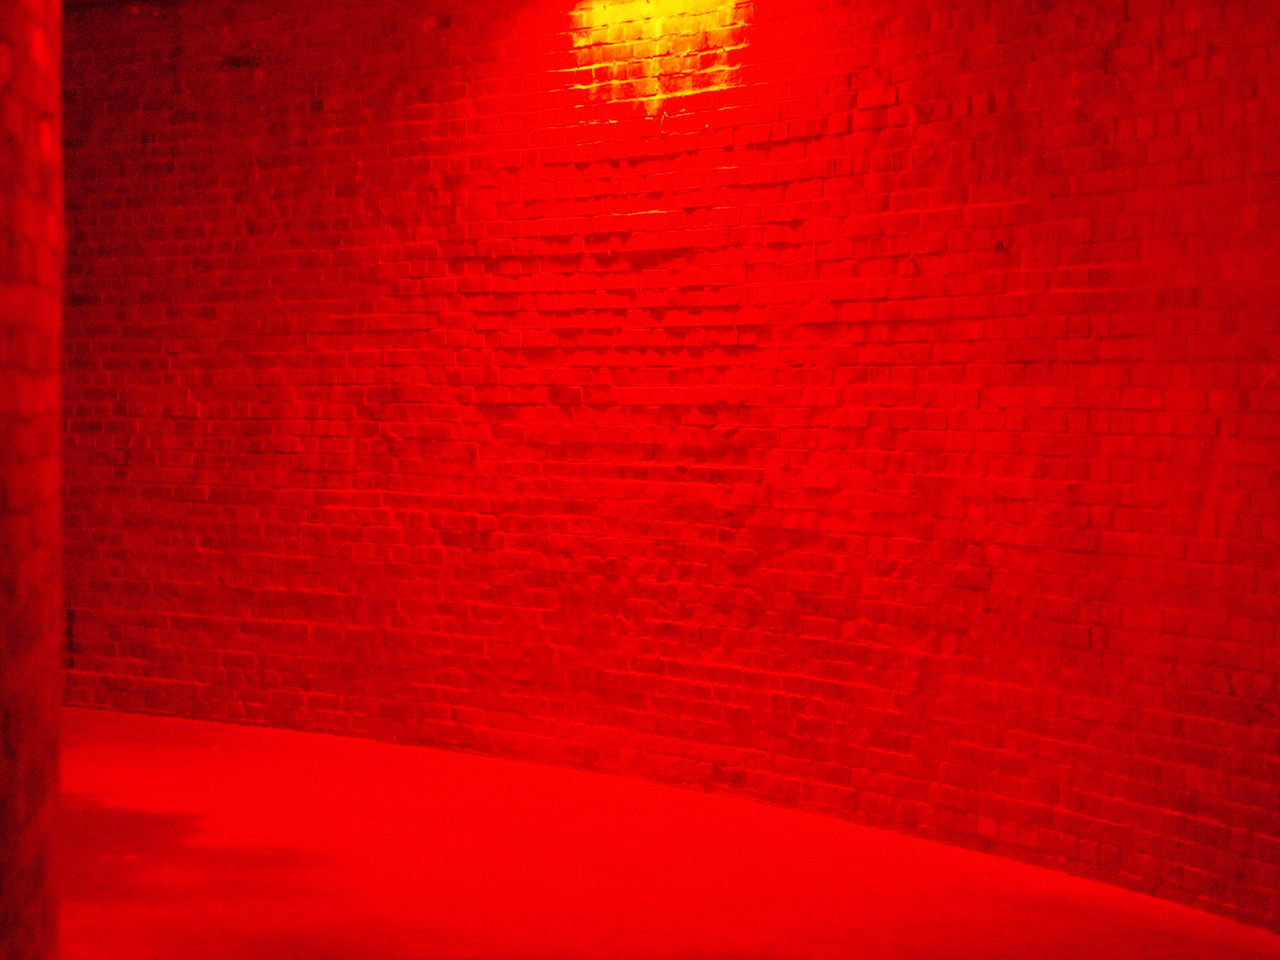 a corridor lit with red light